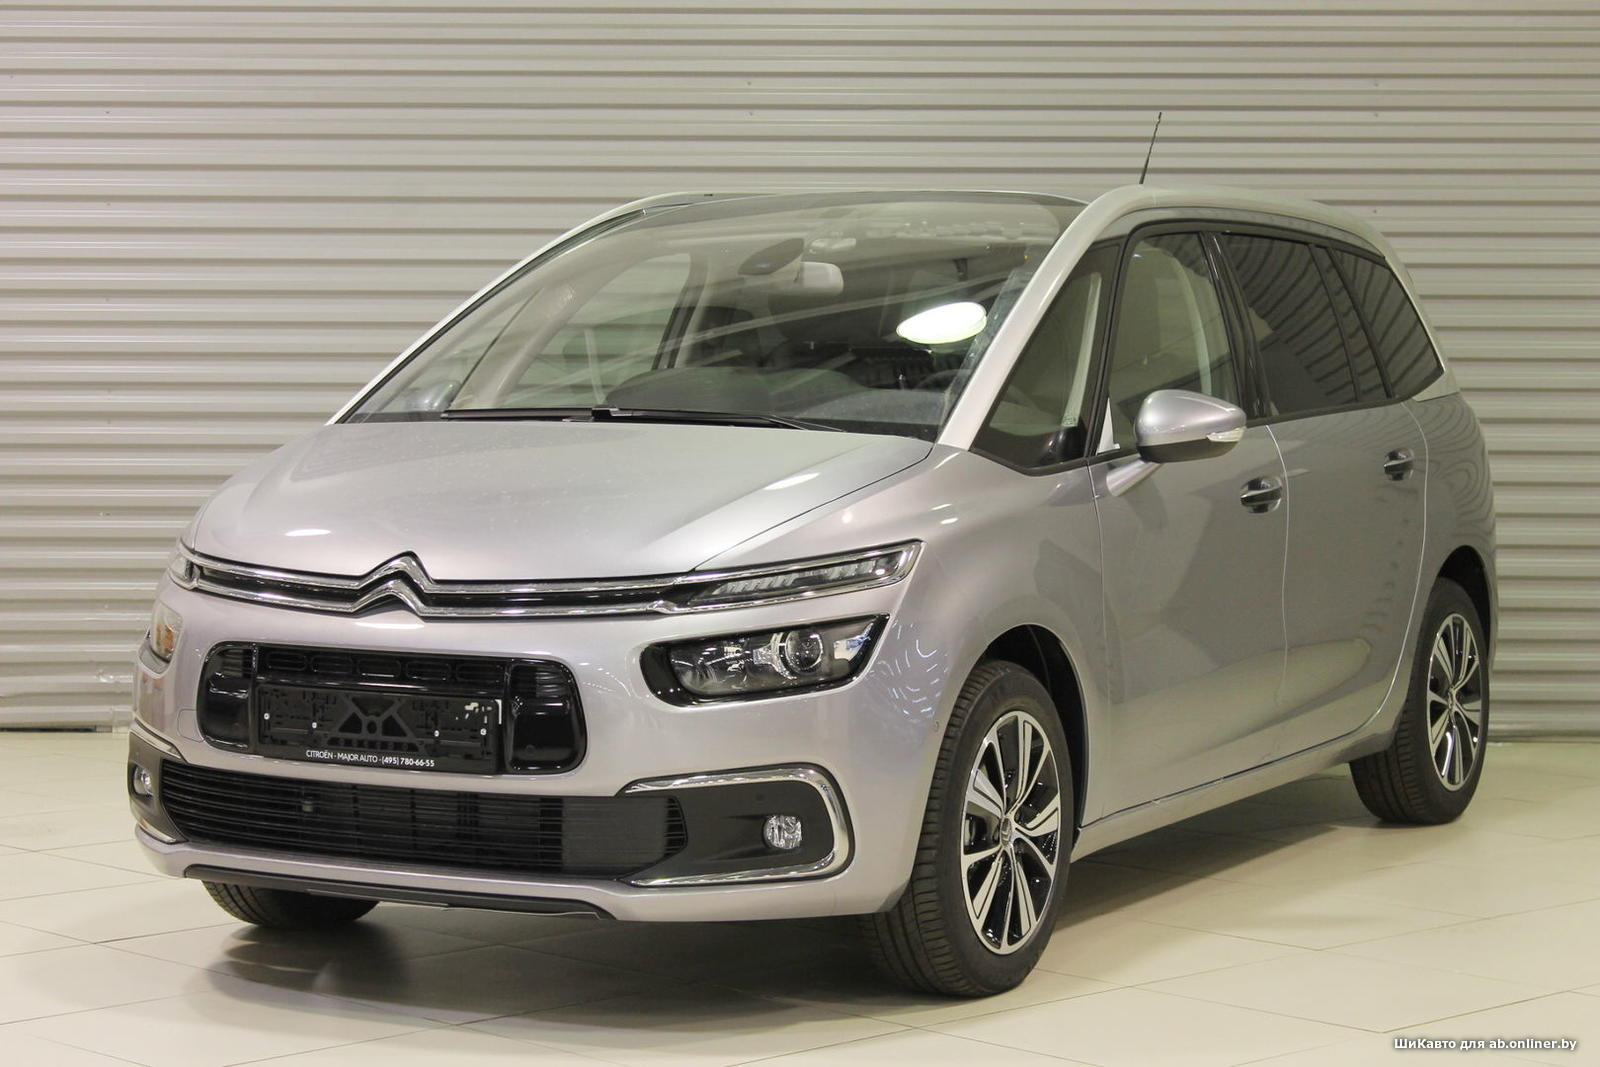 Citroen C4 Grand Picasso 1.6 BlueHDI AT Shine